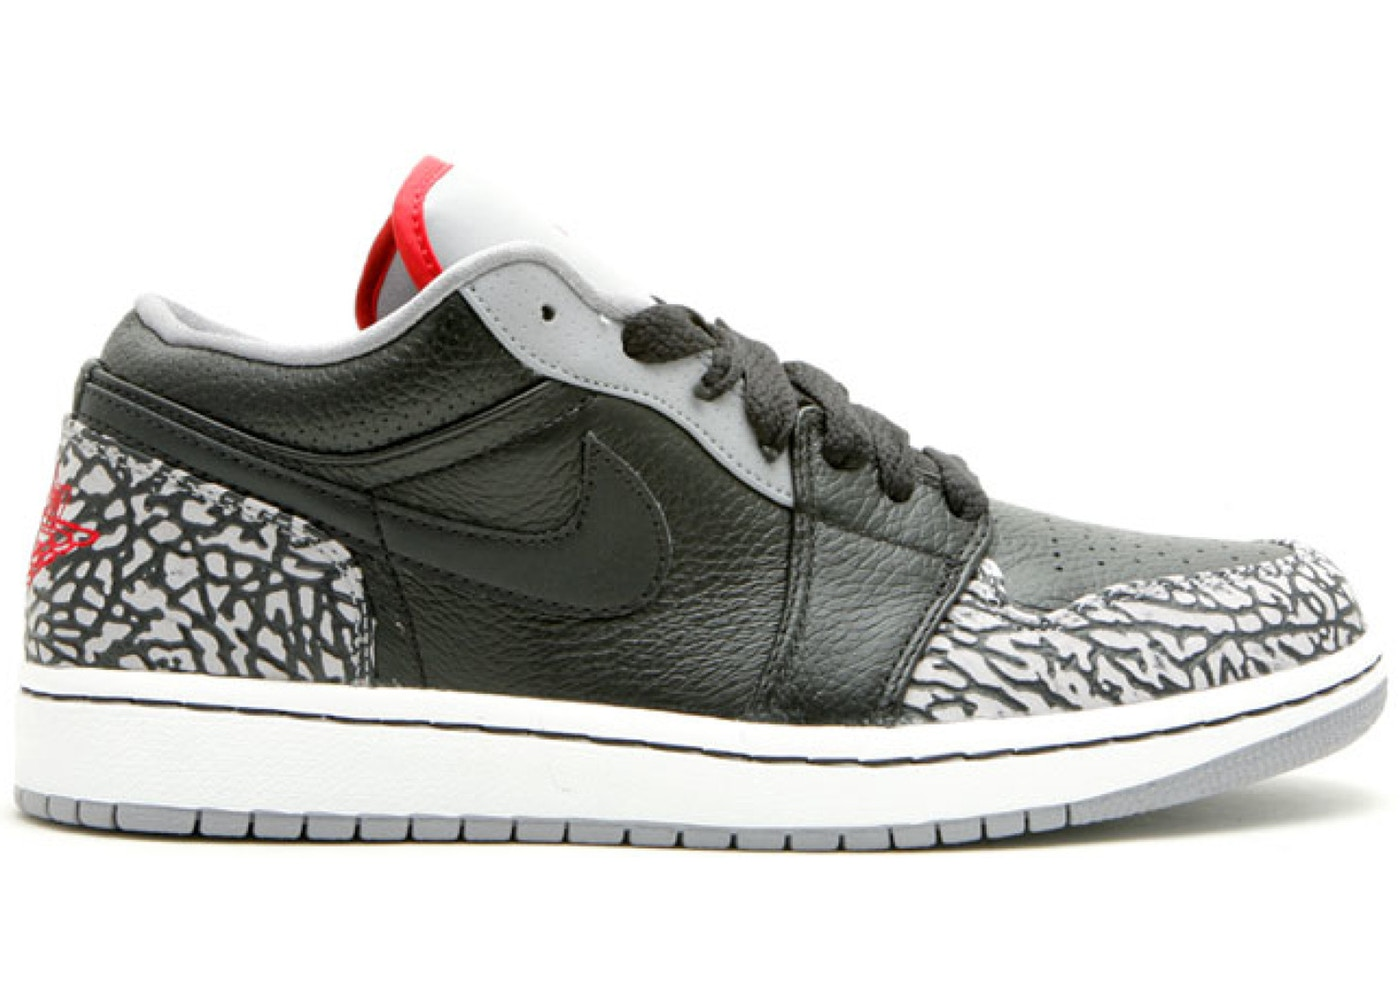 lowest price cb3b2 af099 Jordan 1 Phat Low Black Cement (2008)